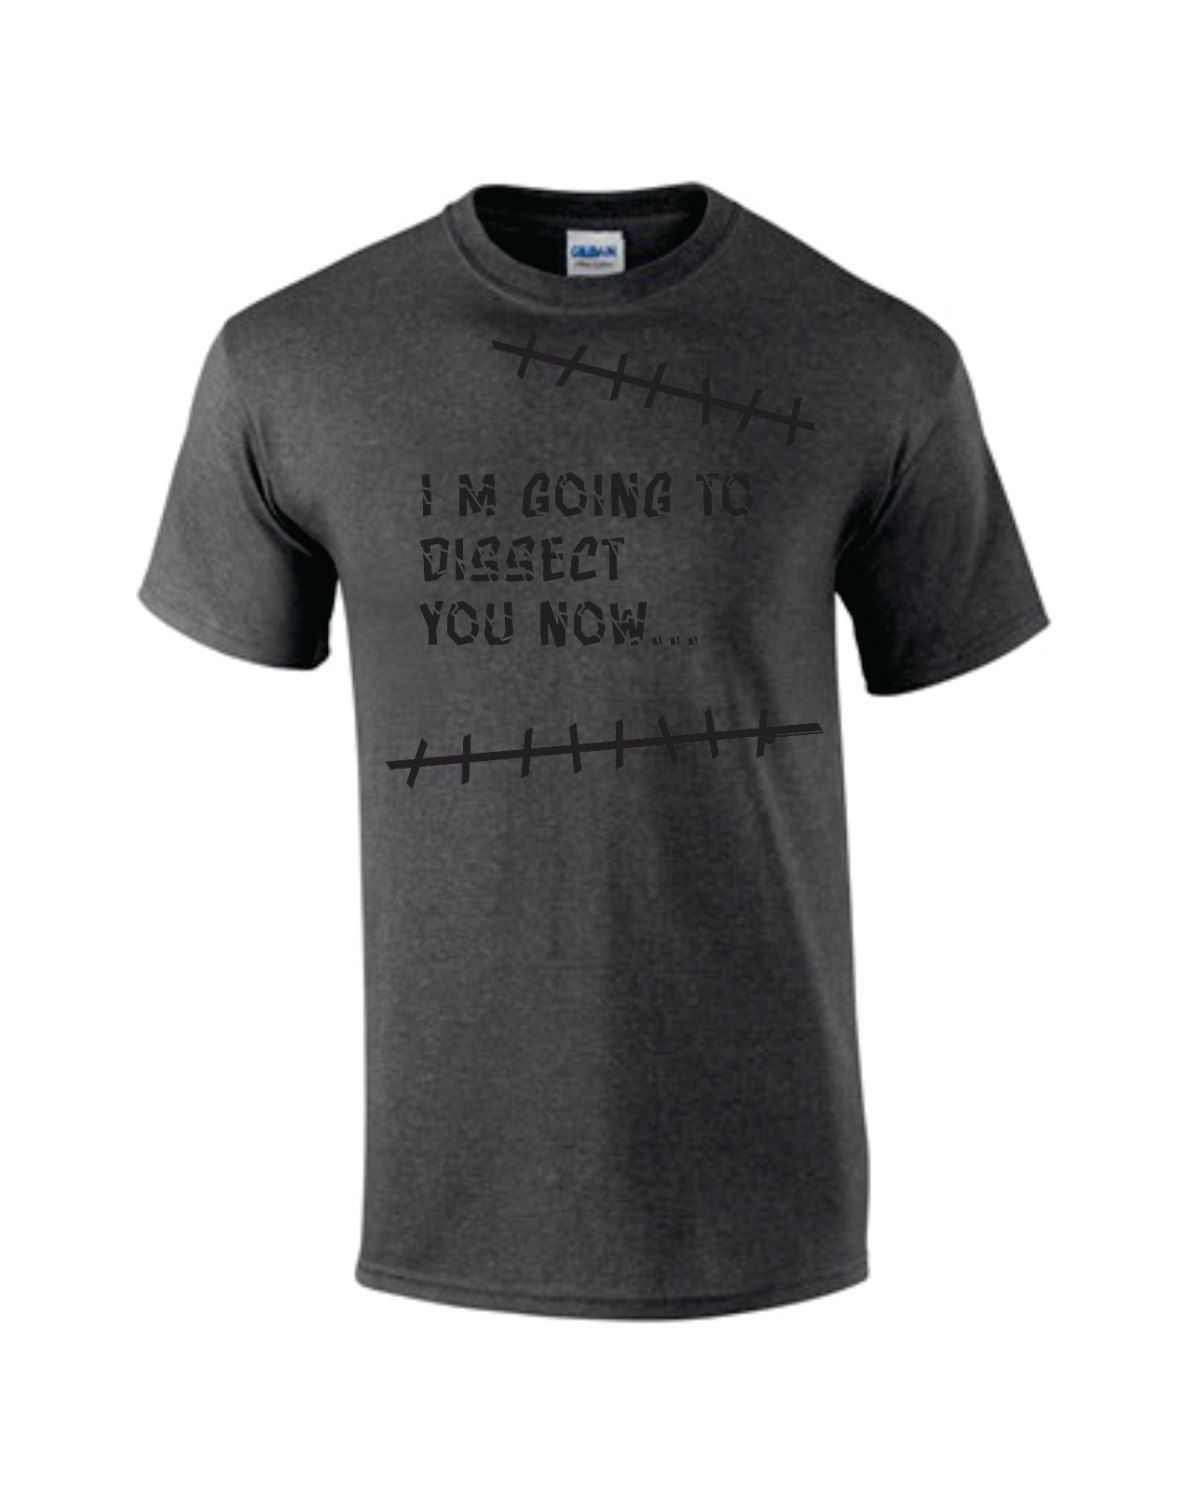 I'm Going to Dissect You Now - Soul Eater Fan Shirt - (Discontinued). $10.00, via Etsy.